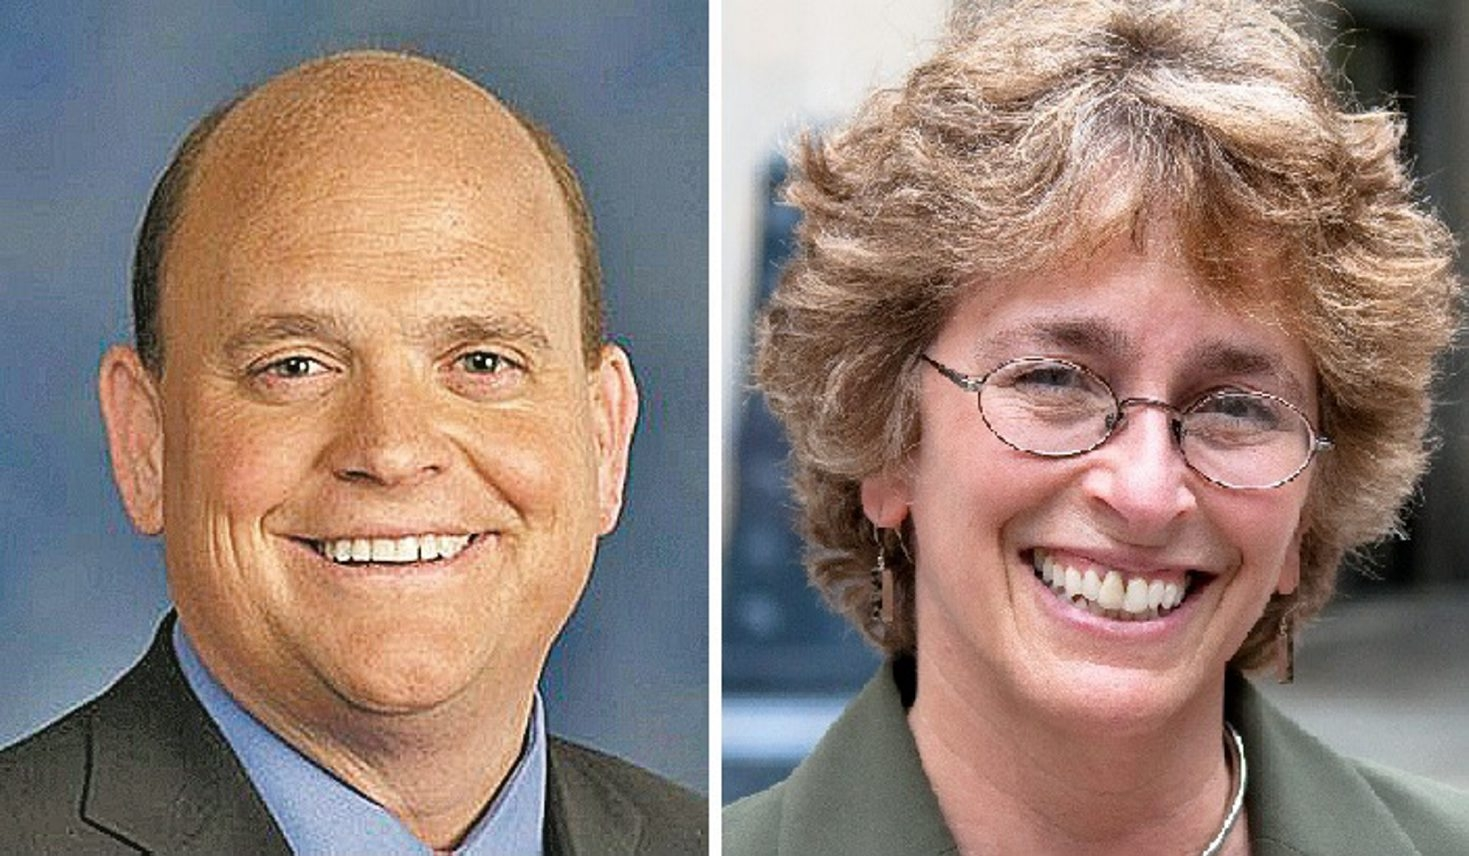 Campaign finance reports filed Tuesday show Congressman Tom Reed, a Republican, has $262,000 more than Democratic challenger Martha Robertson left in his campaign account because while he has raised much more money, he has spent his campaign cash at a far faster rate.